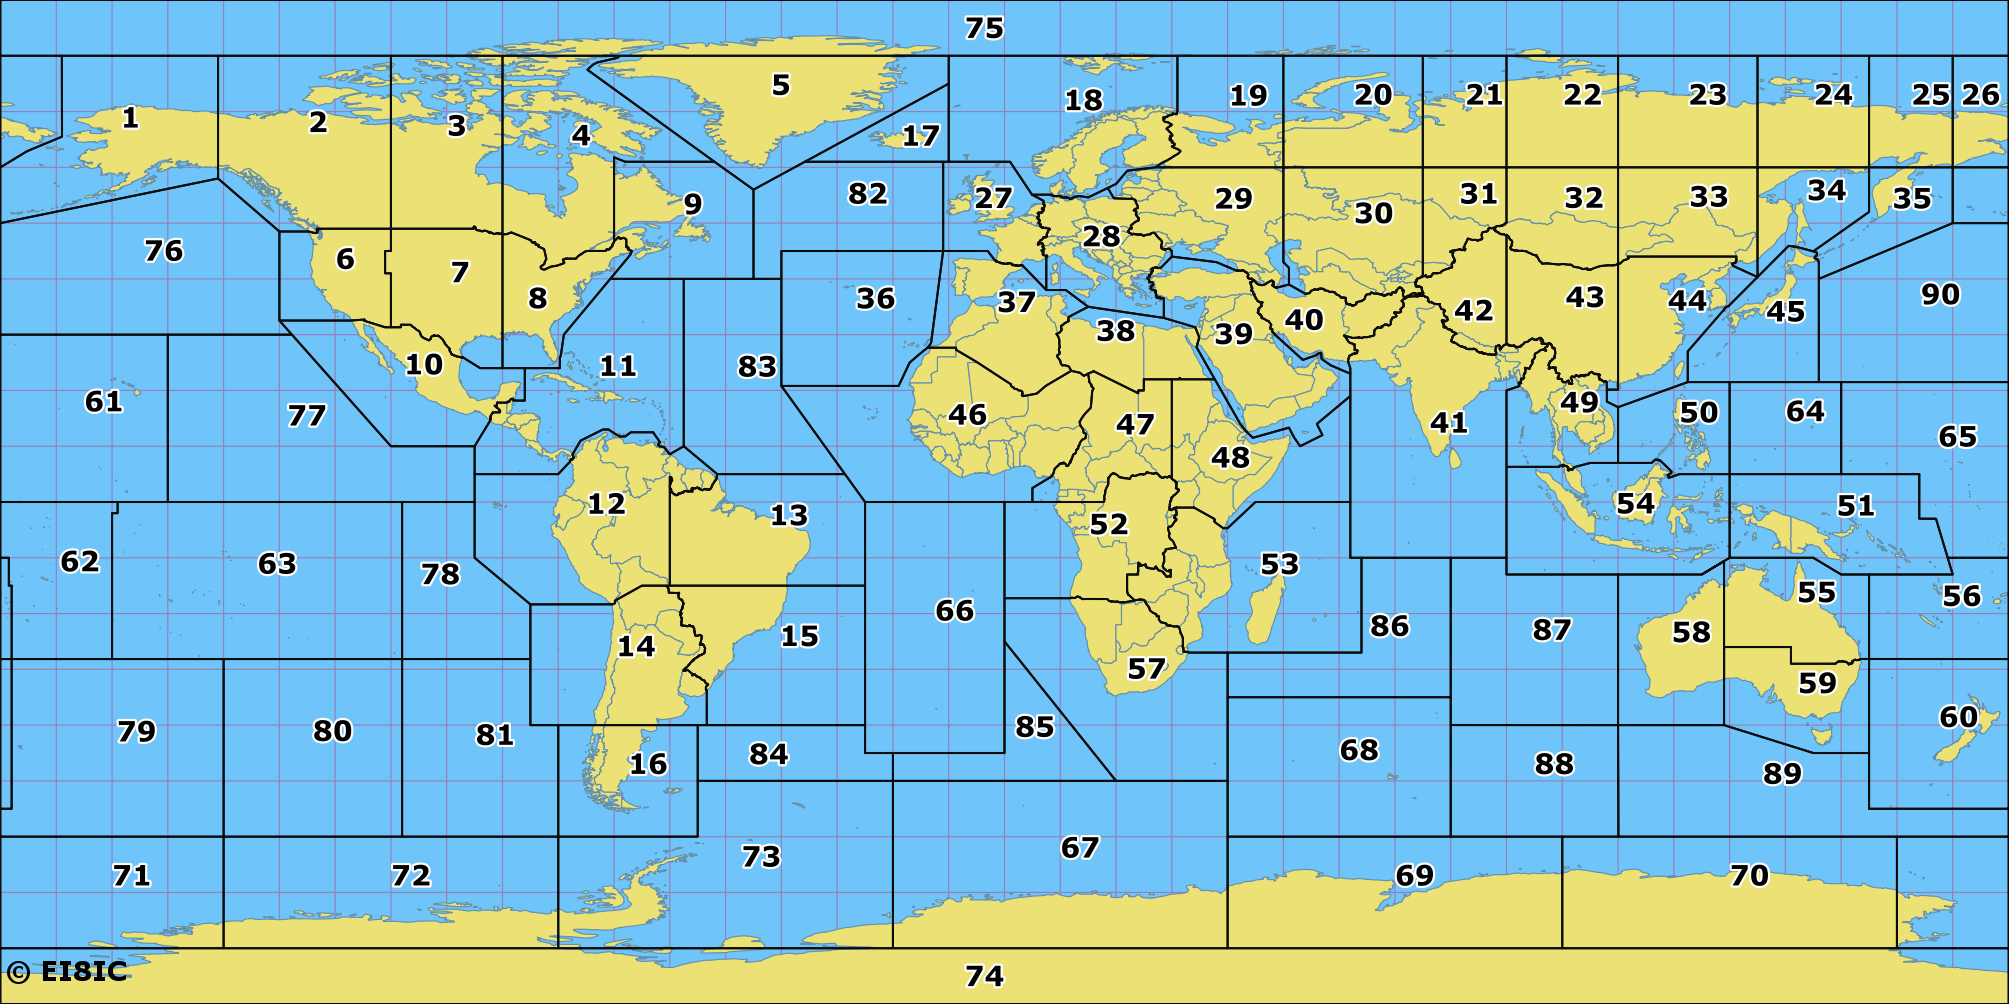 Amateur Radio ITU Zones of the World Map on delaware agricultural map, nassau county town zip code map, west orange nj zoning map, mt. lebanon map, evanston il zoning map, area map, los angeles california fire map, outer cape map, illea map, state map, davis county utah zip code map, simple zoning map, nave map, city map, us cable map, primal map, us zip code map, yamhill county oregon zoning map, weather lansing mi map, sask hunting map,